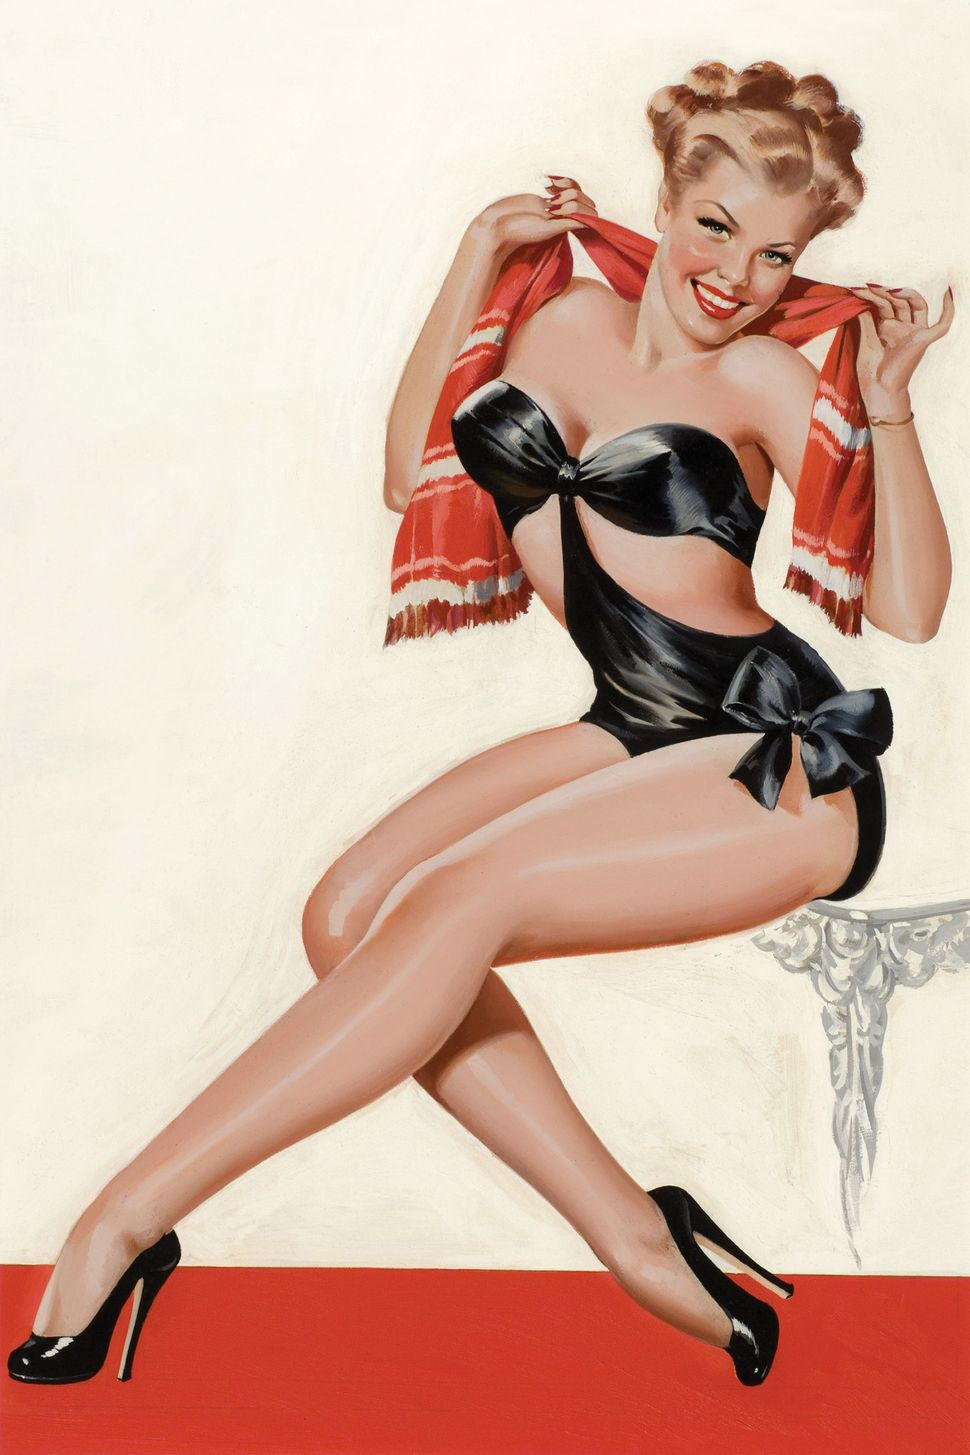 Pin By Jonika Tarot On Totally Tarot Group Board: Your Visual Guide To The Timeless Queens Of Pin-Up